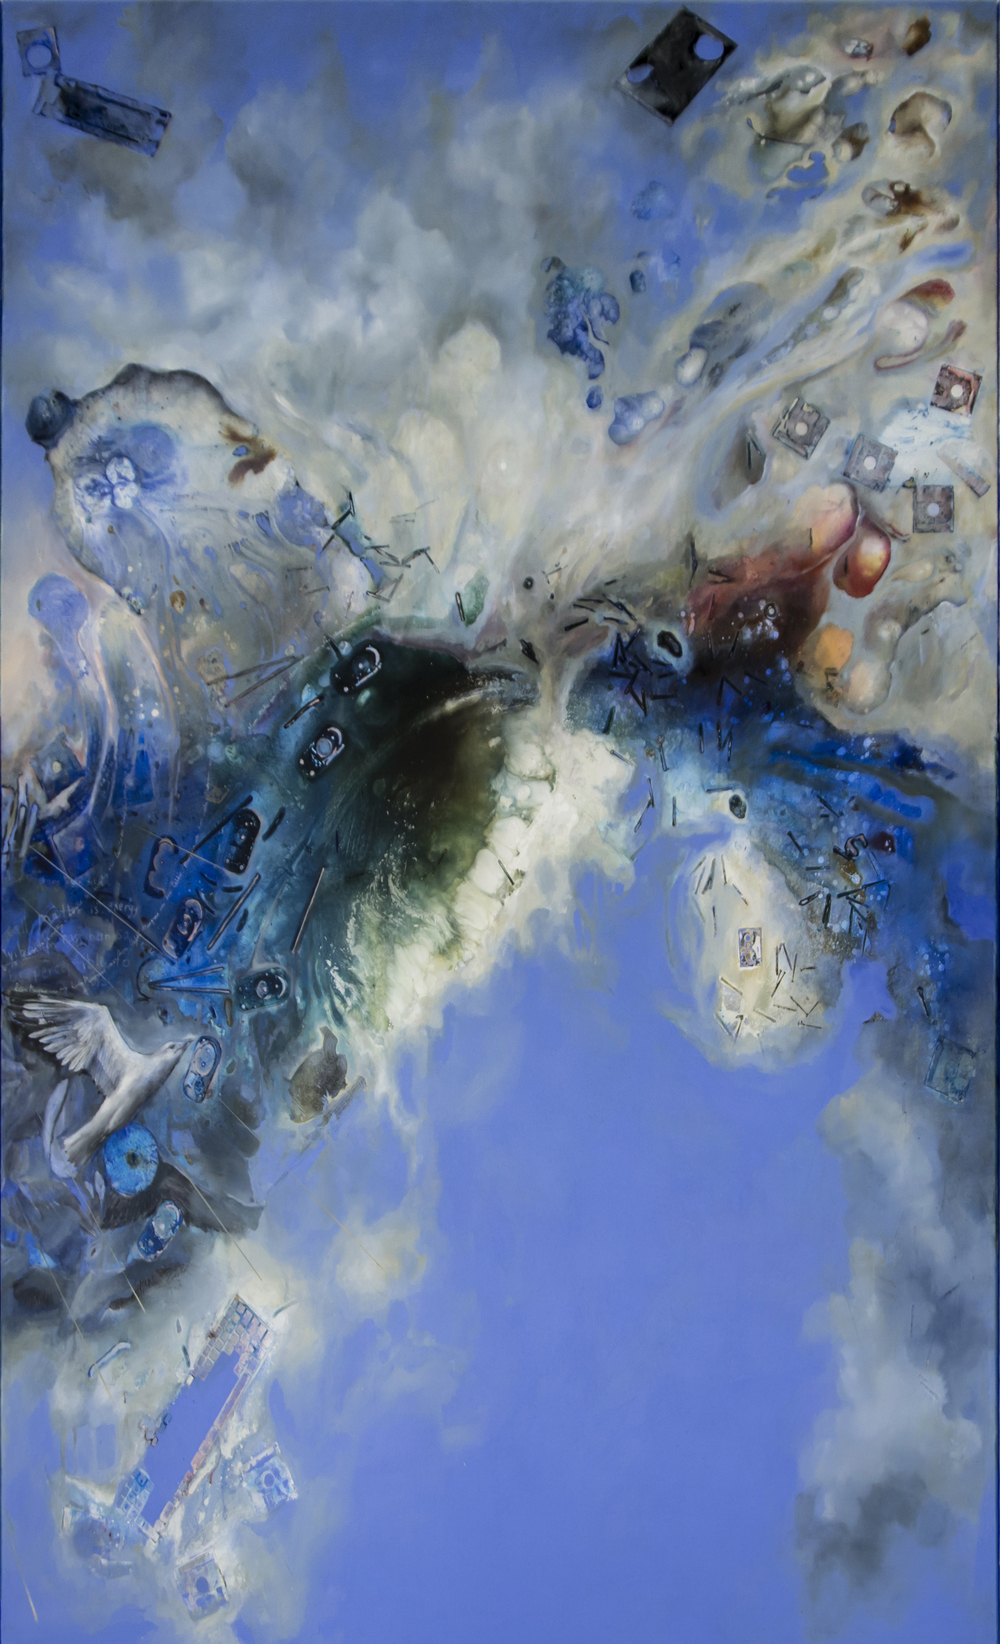 Cloud (Panel 3), Acrylic on Canvas, 10' by 7', 2015